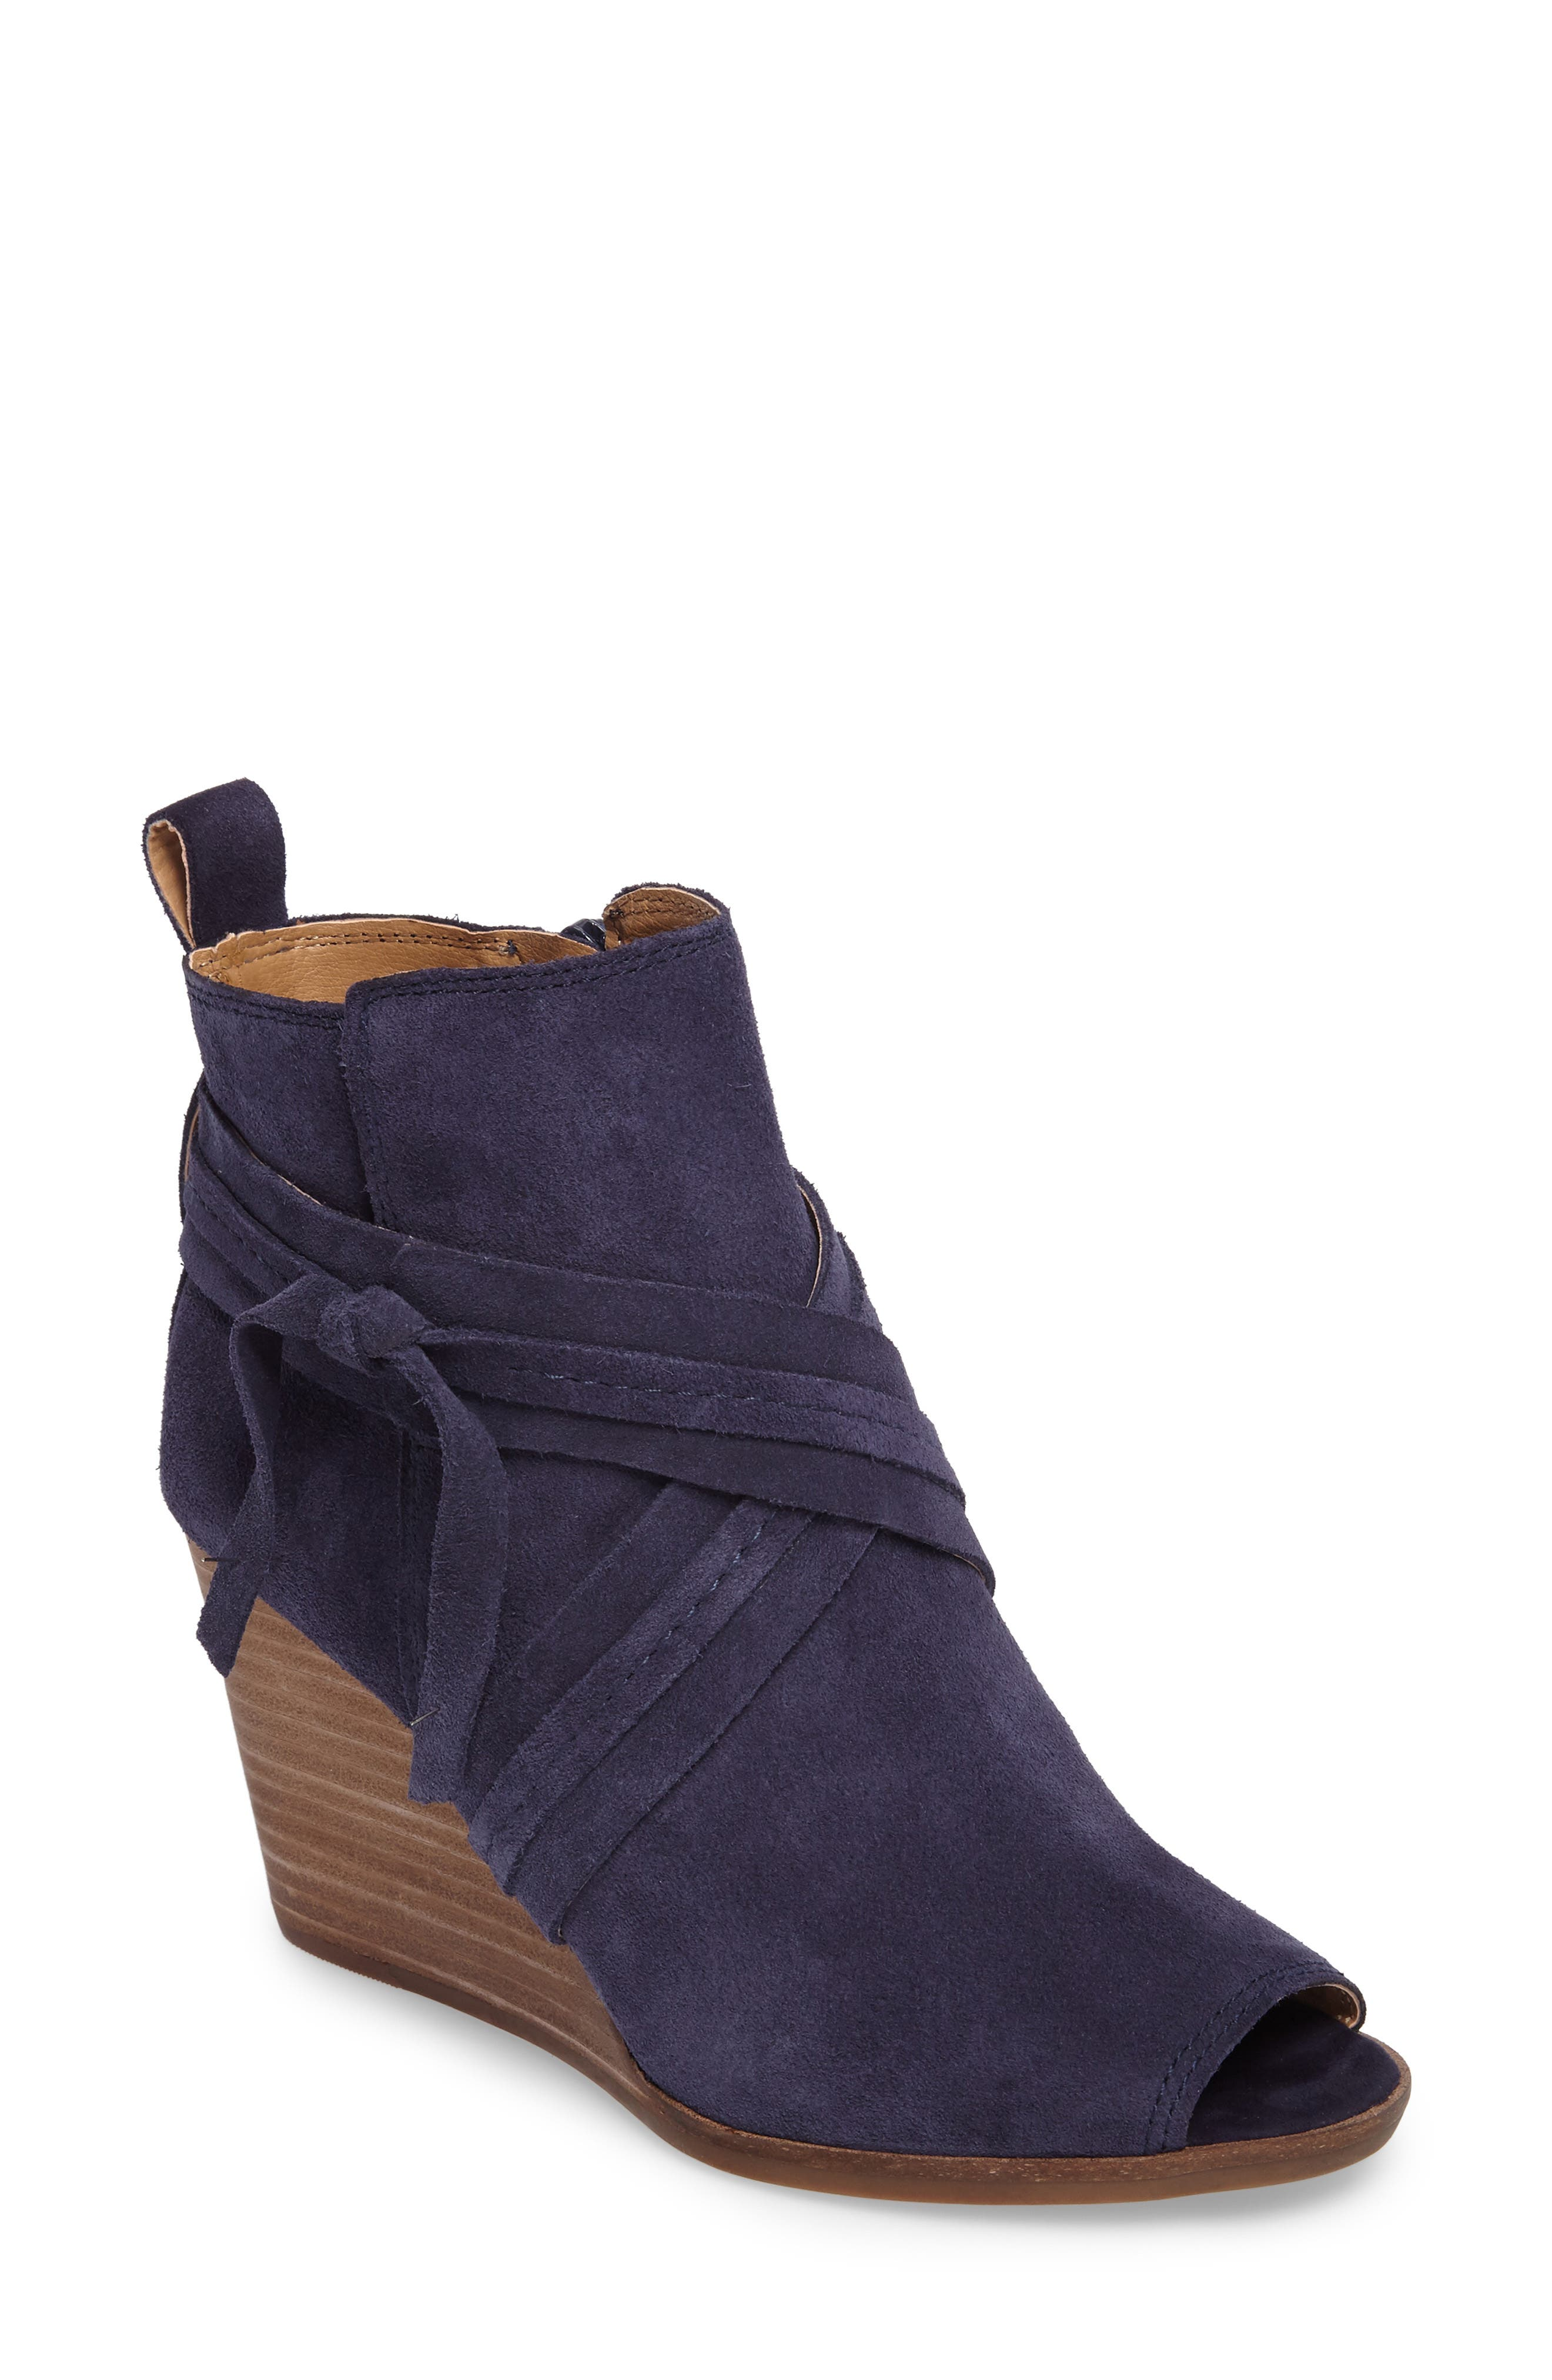 Main Image - Lucky Brand Udom Wedge Bootie (Women)